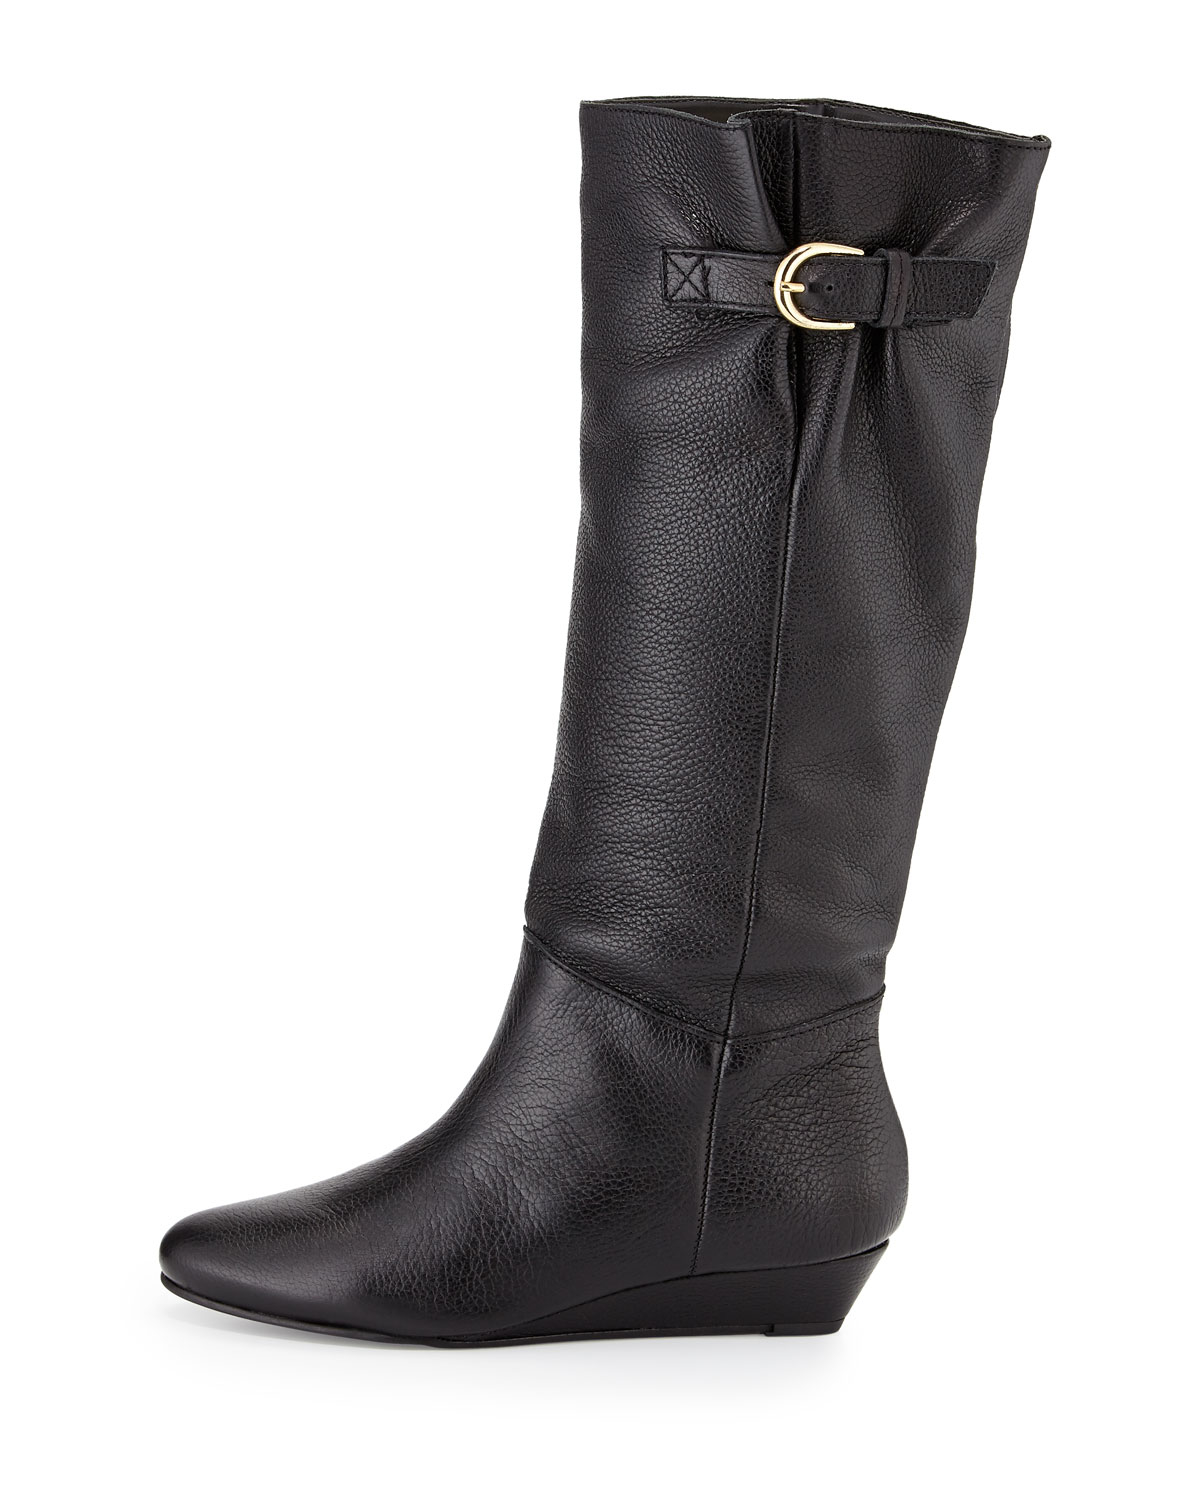 steven by steve madden insight leather demi wedge boot in